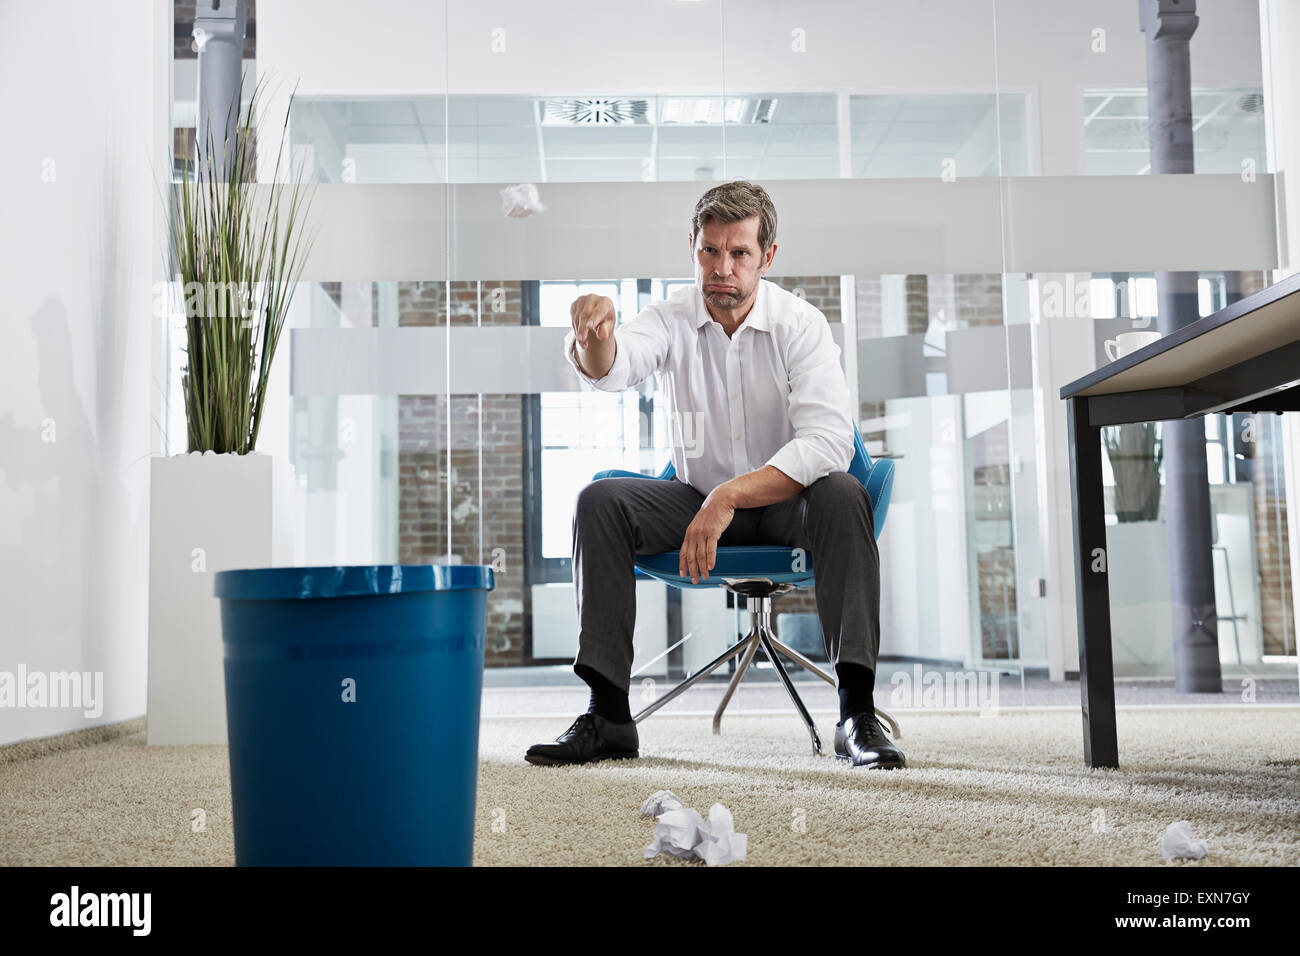 Businessman In Office Throwing Crumpled Paper In Wastepaper Basket   Stock  Image